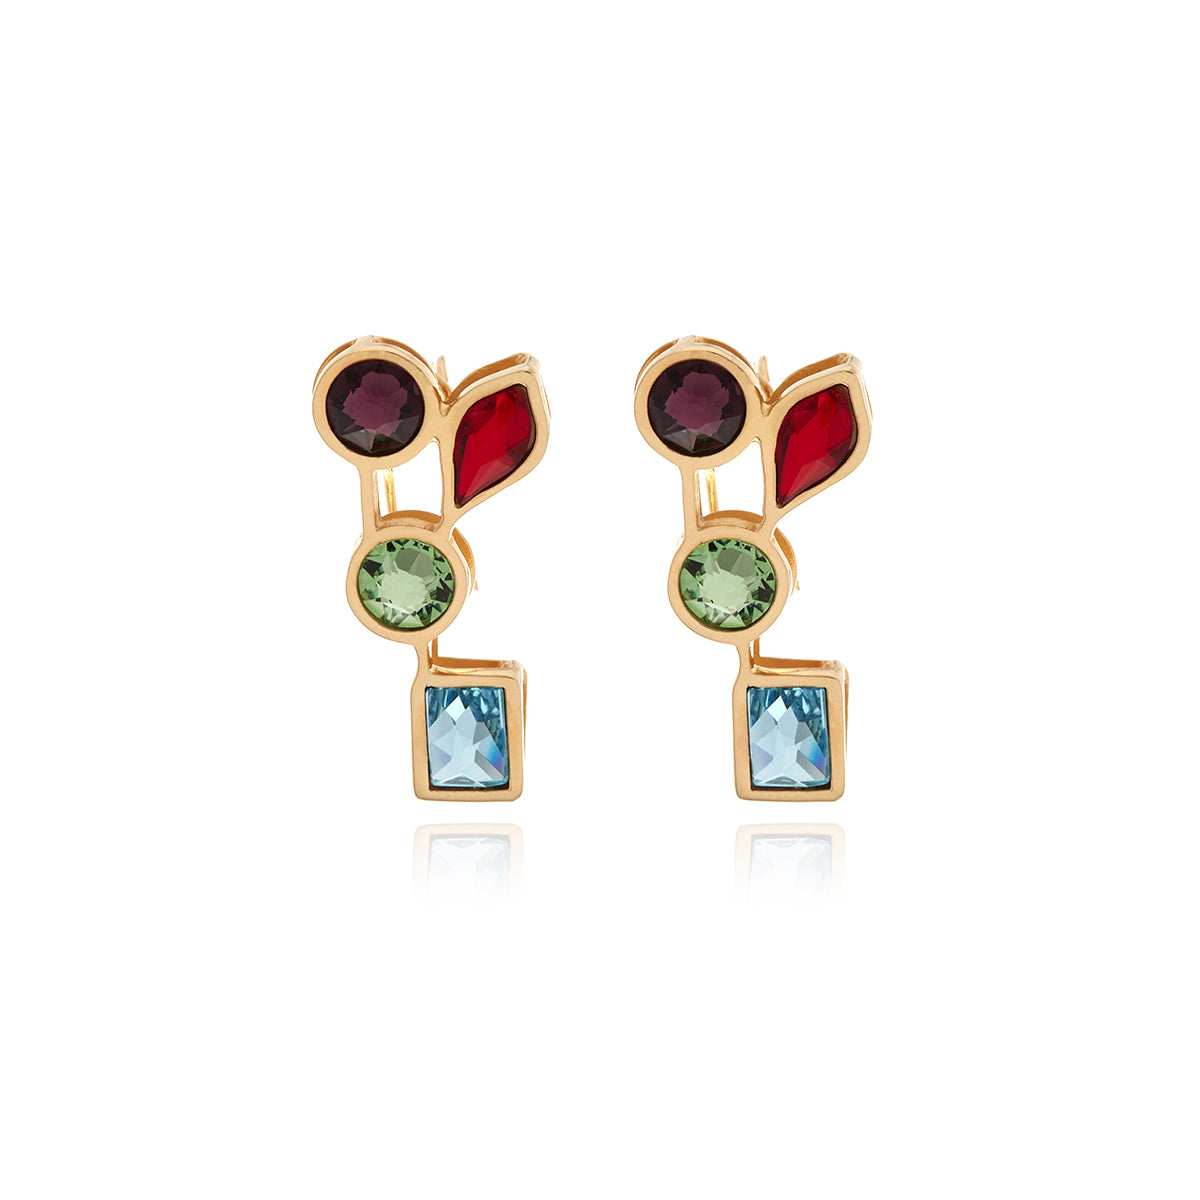 Luxe Gold Earrings